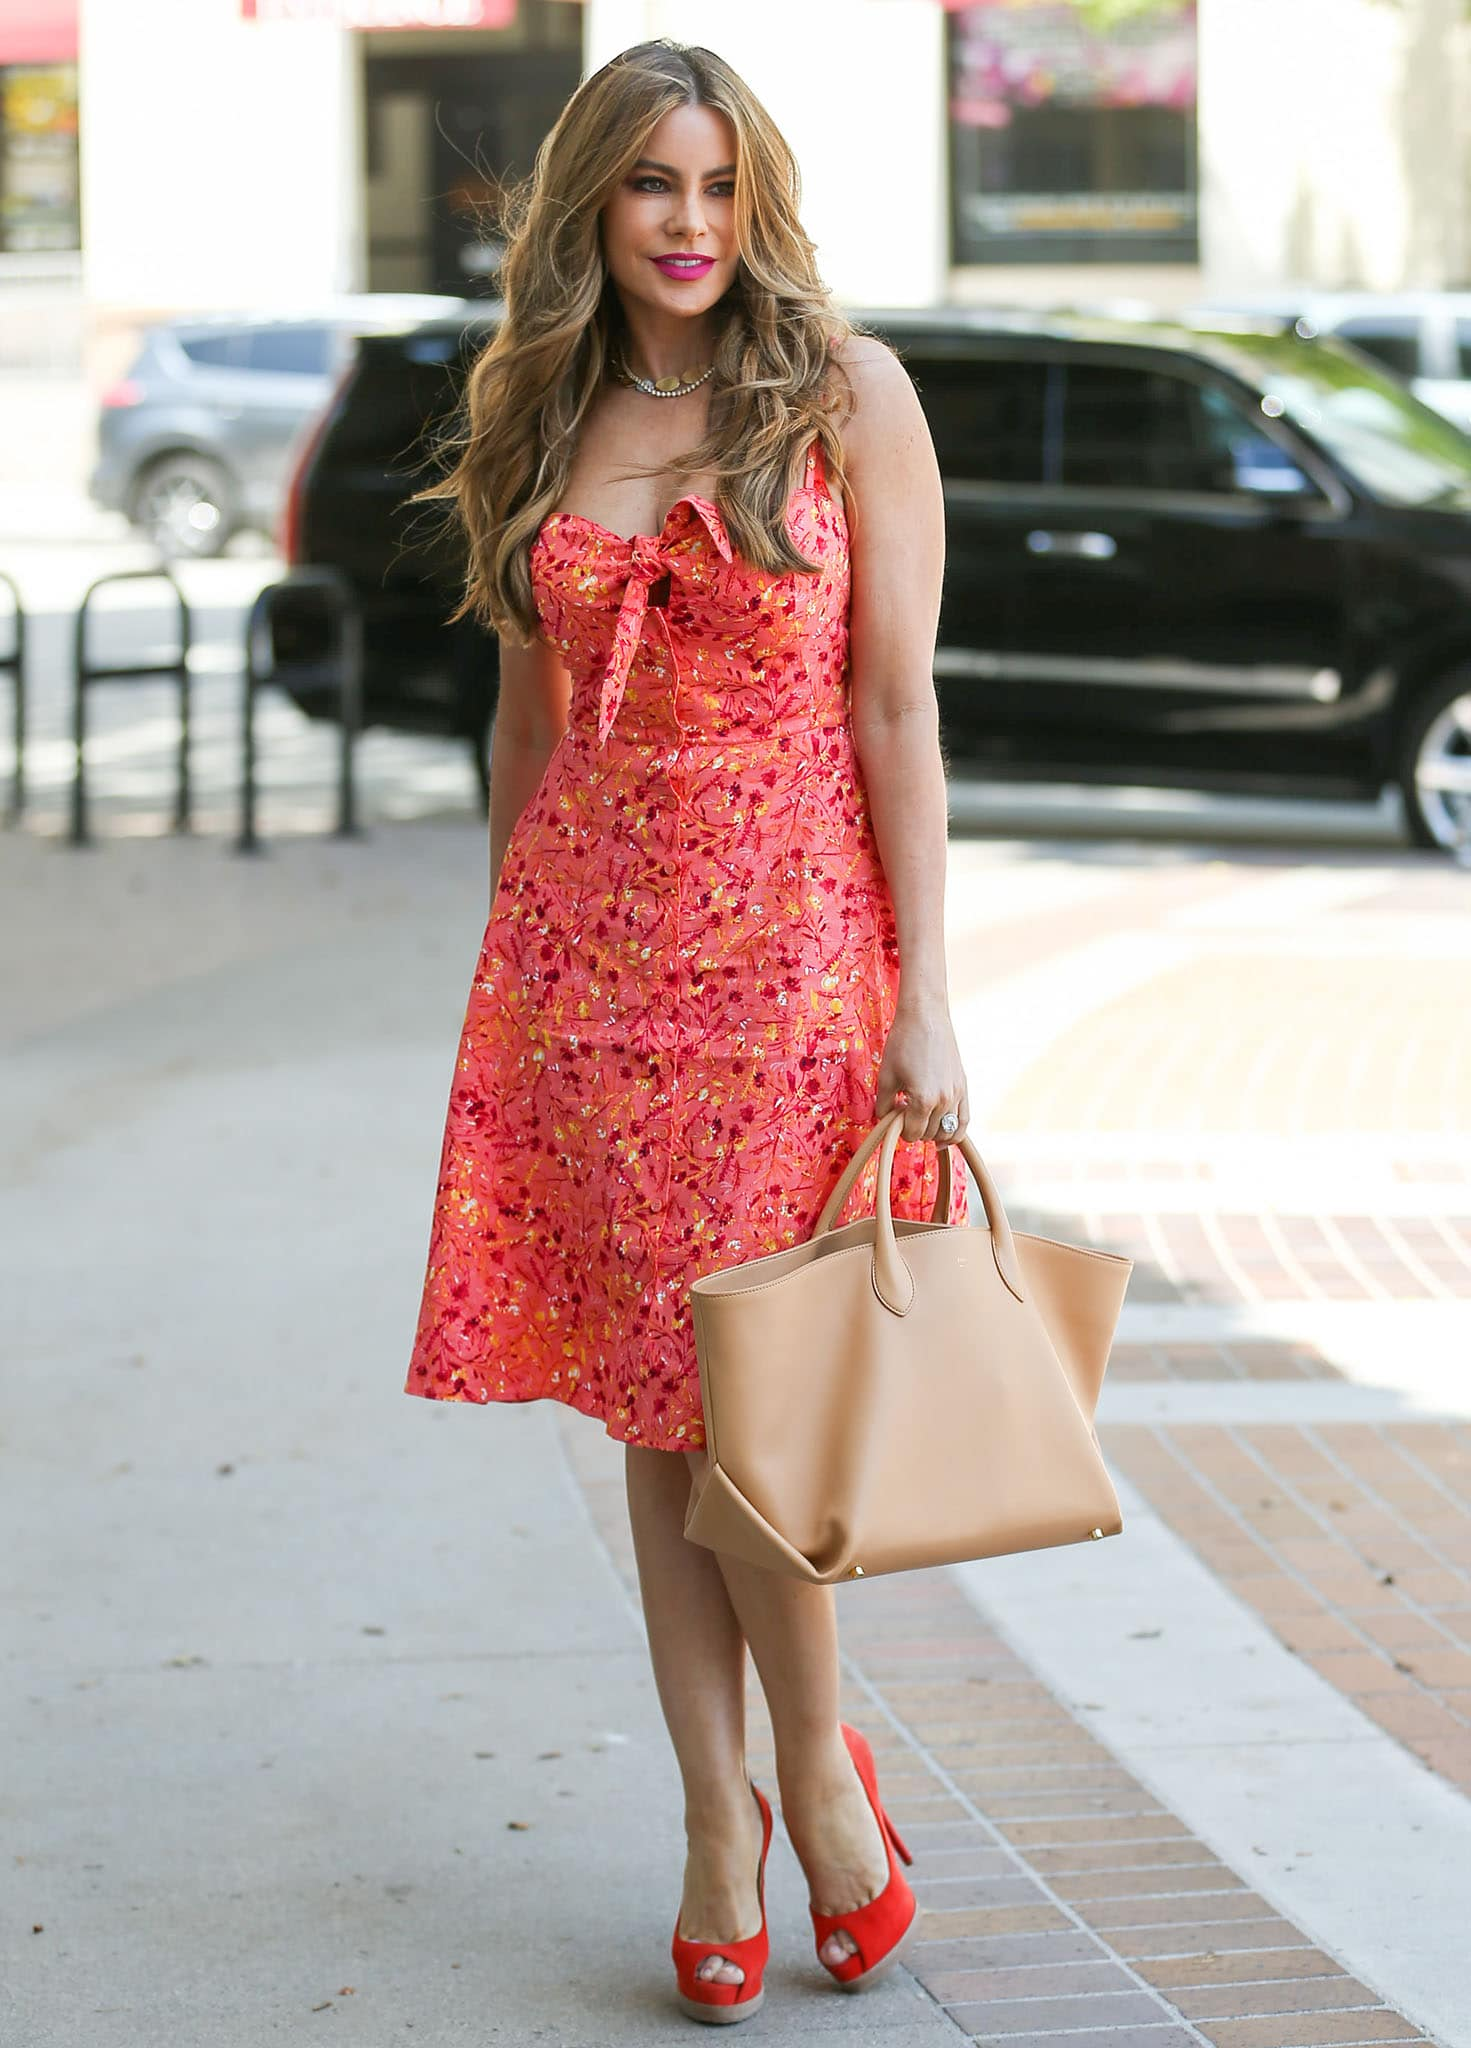 Sofia Vergara slips her curves into a flirty coral mini dress from her Sofia Jeans collection on April 16, 2021